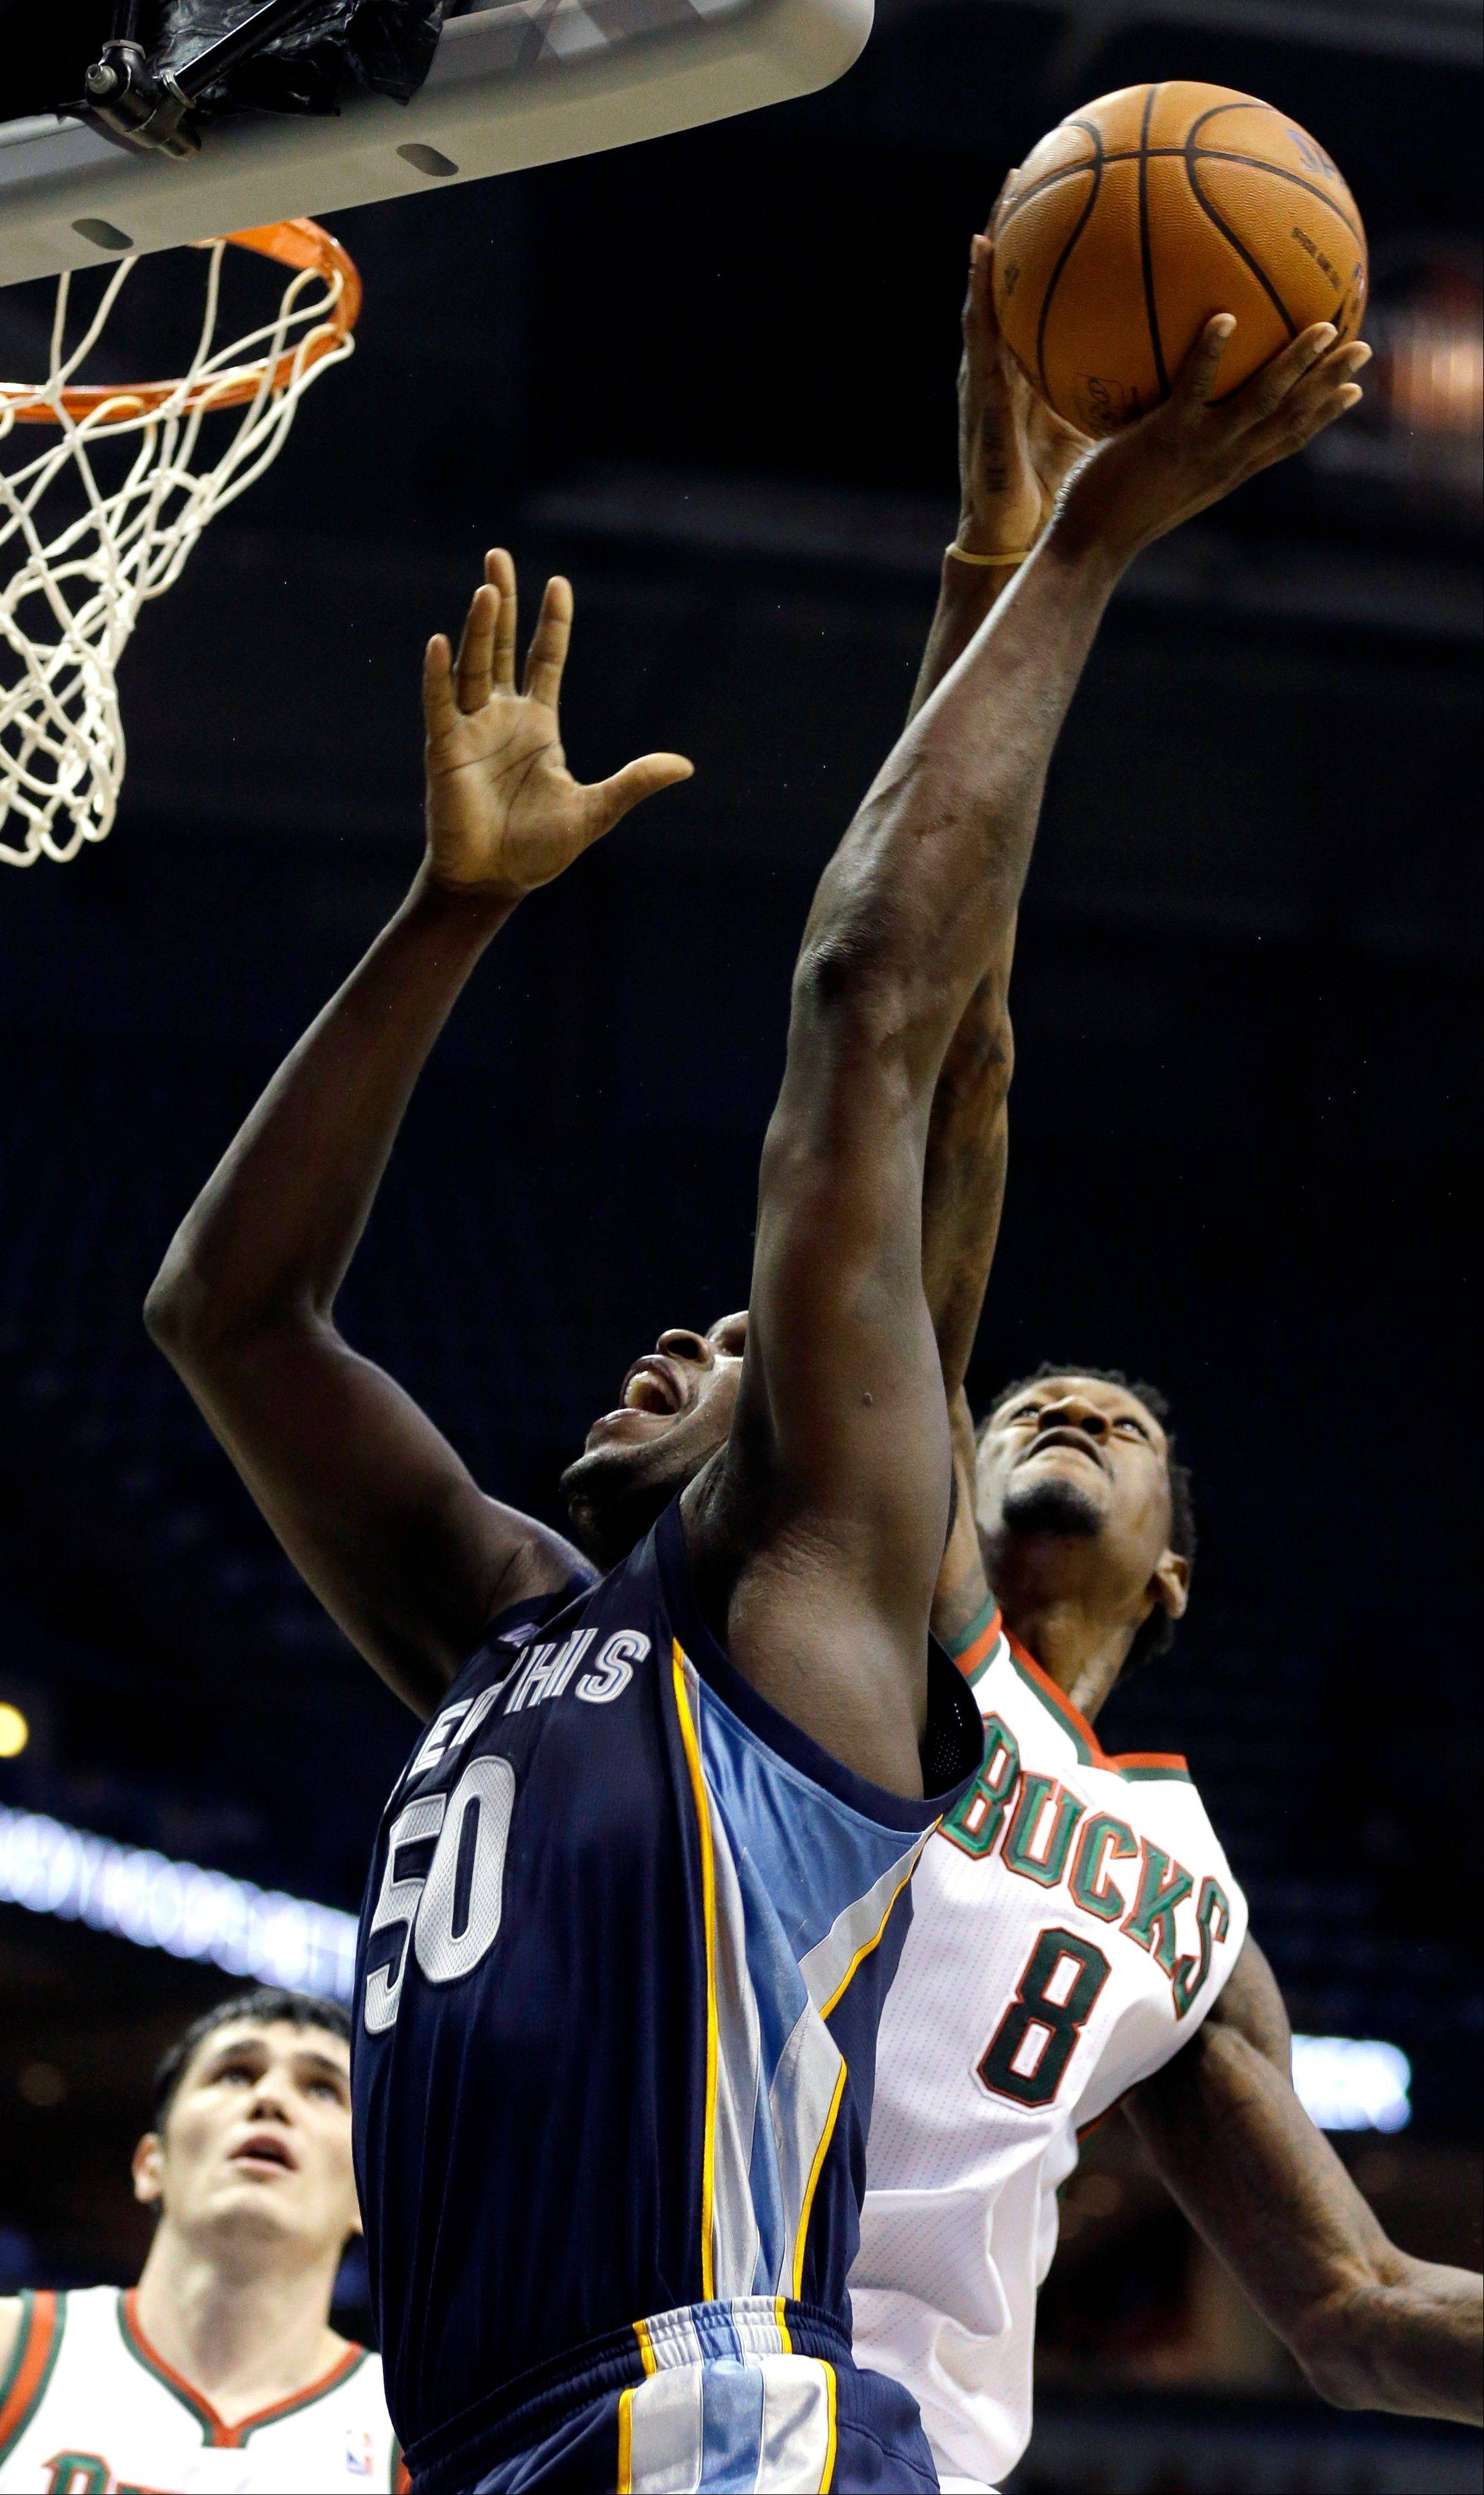 The Milwaukee Bucks Larry Sanders (8) blocks the shot of Memphis Grizzlies� Zach Randolph Wednesday during the first half in Milwaukee.